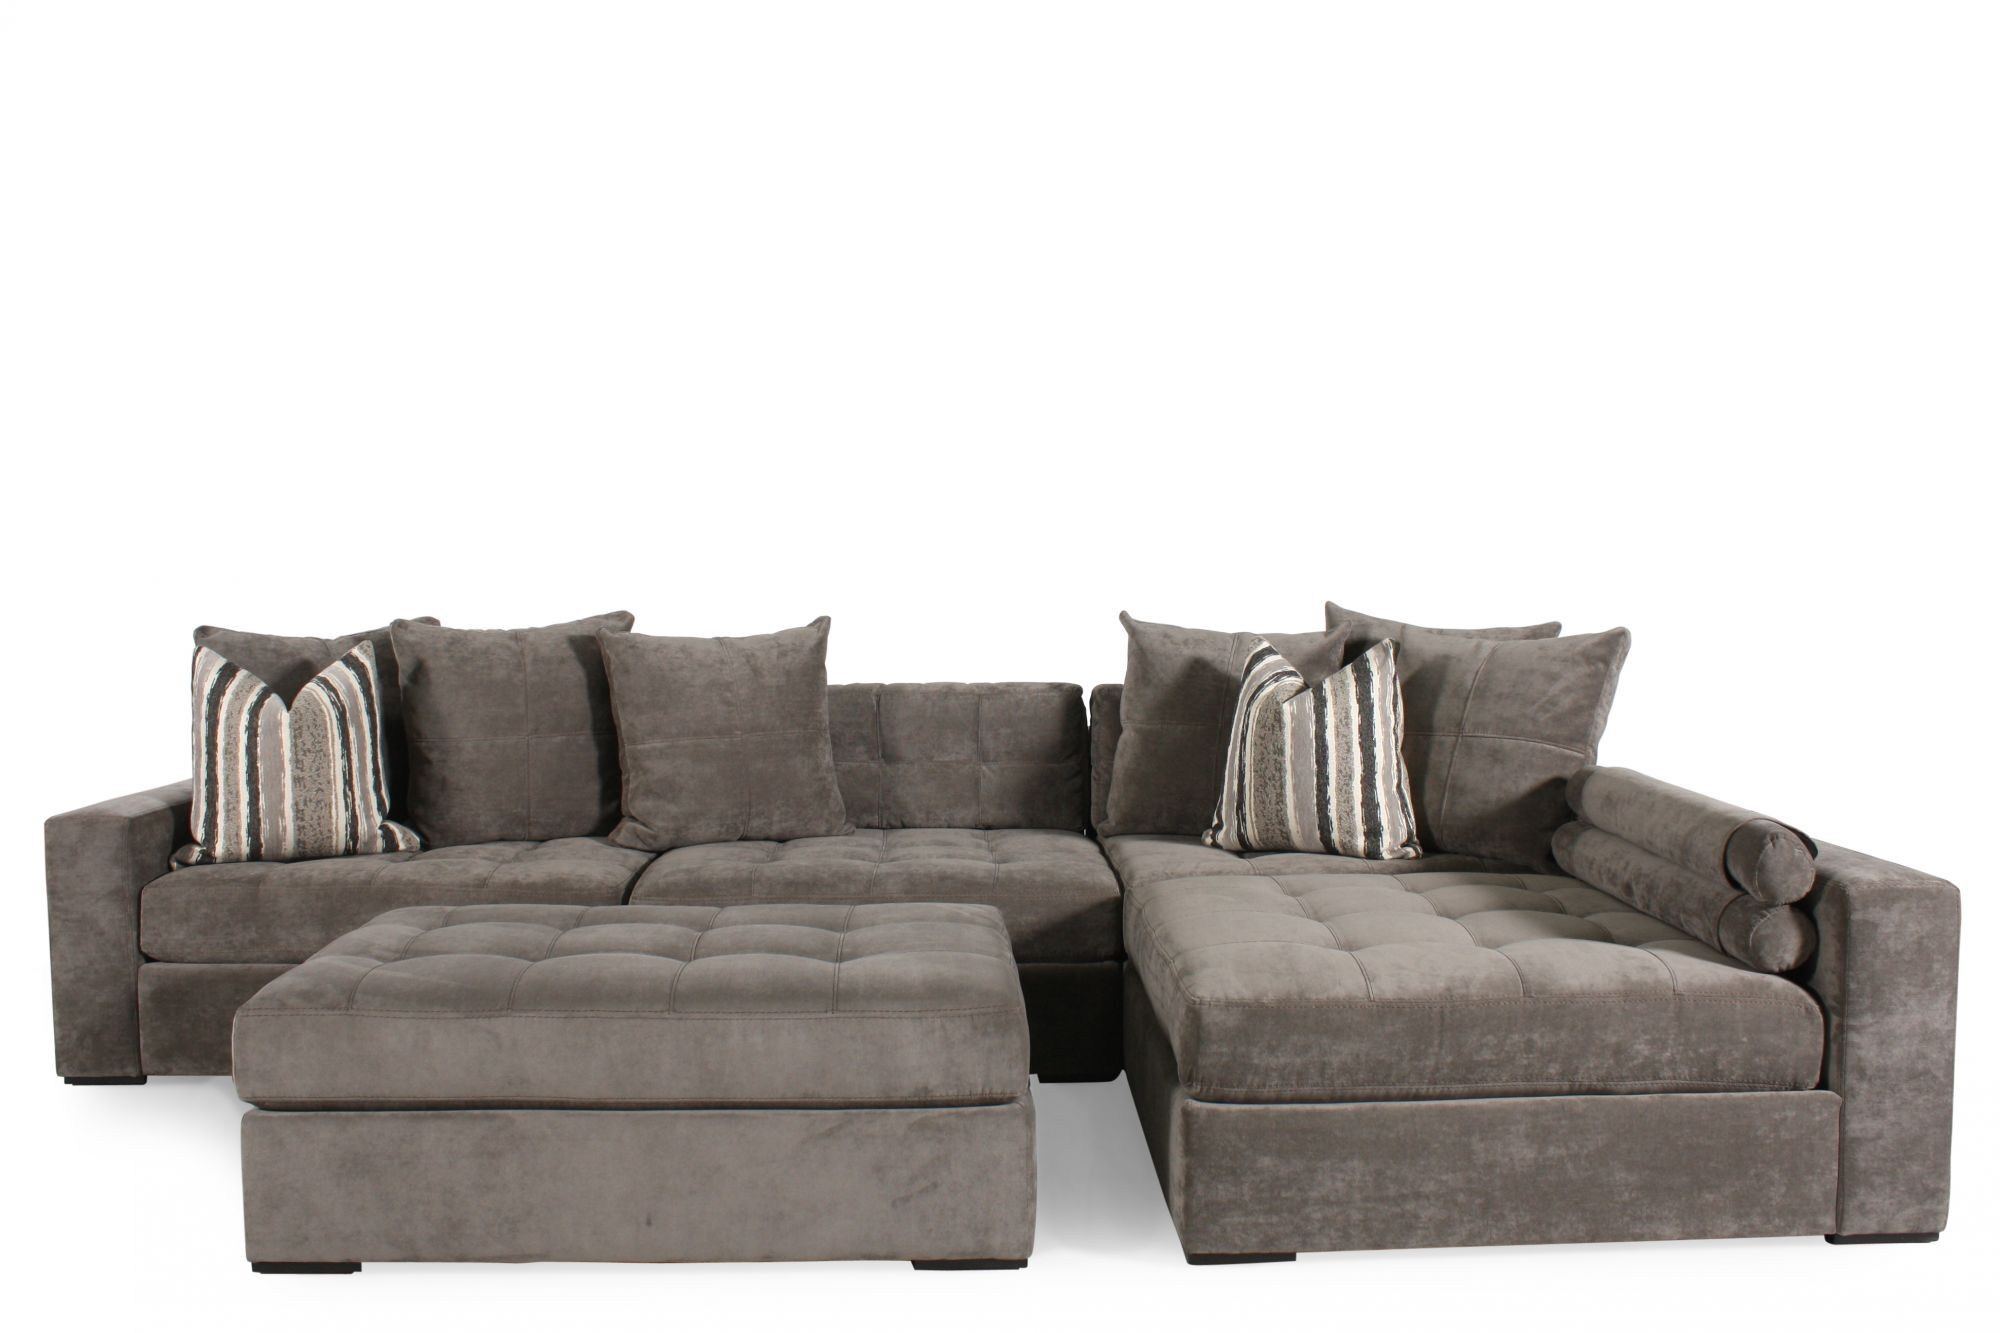 Exceptional Jonathan Louis Juno Four Piece Sectional Mathis Brothers Furniture